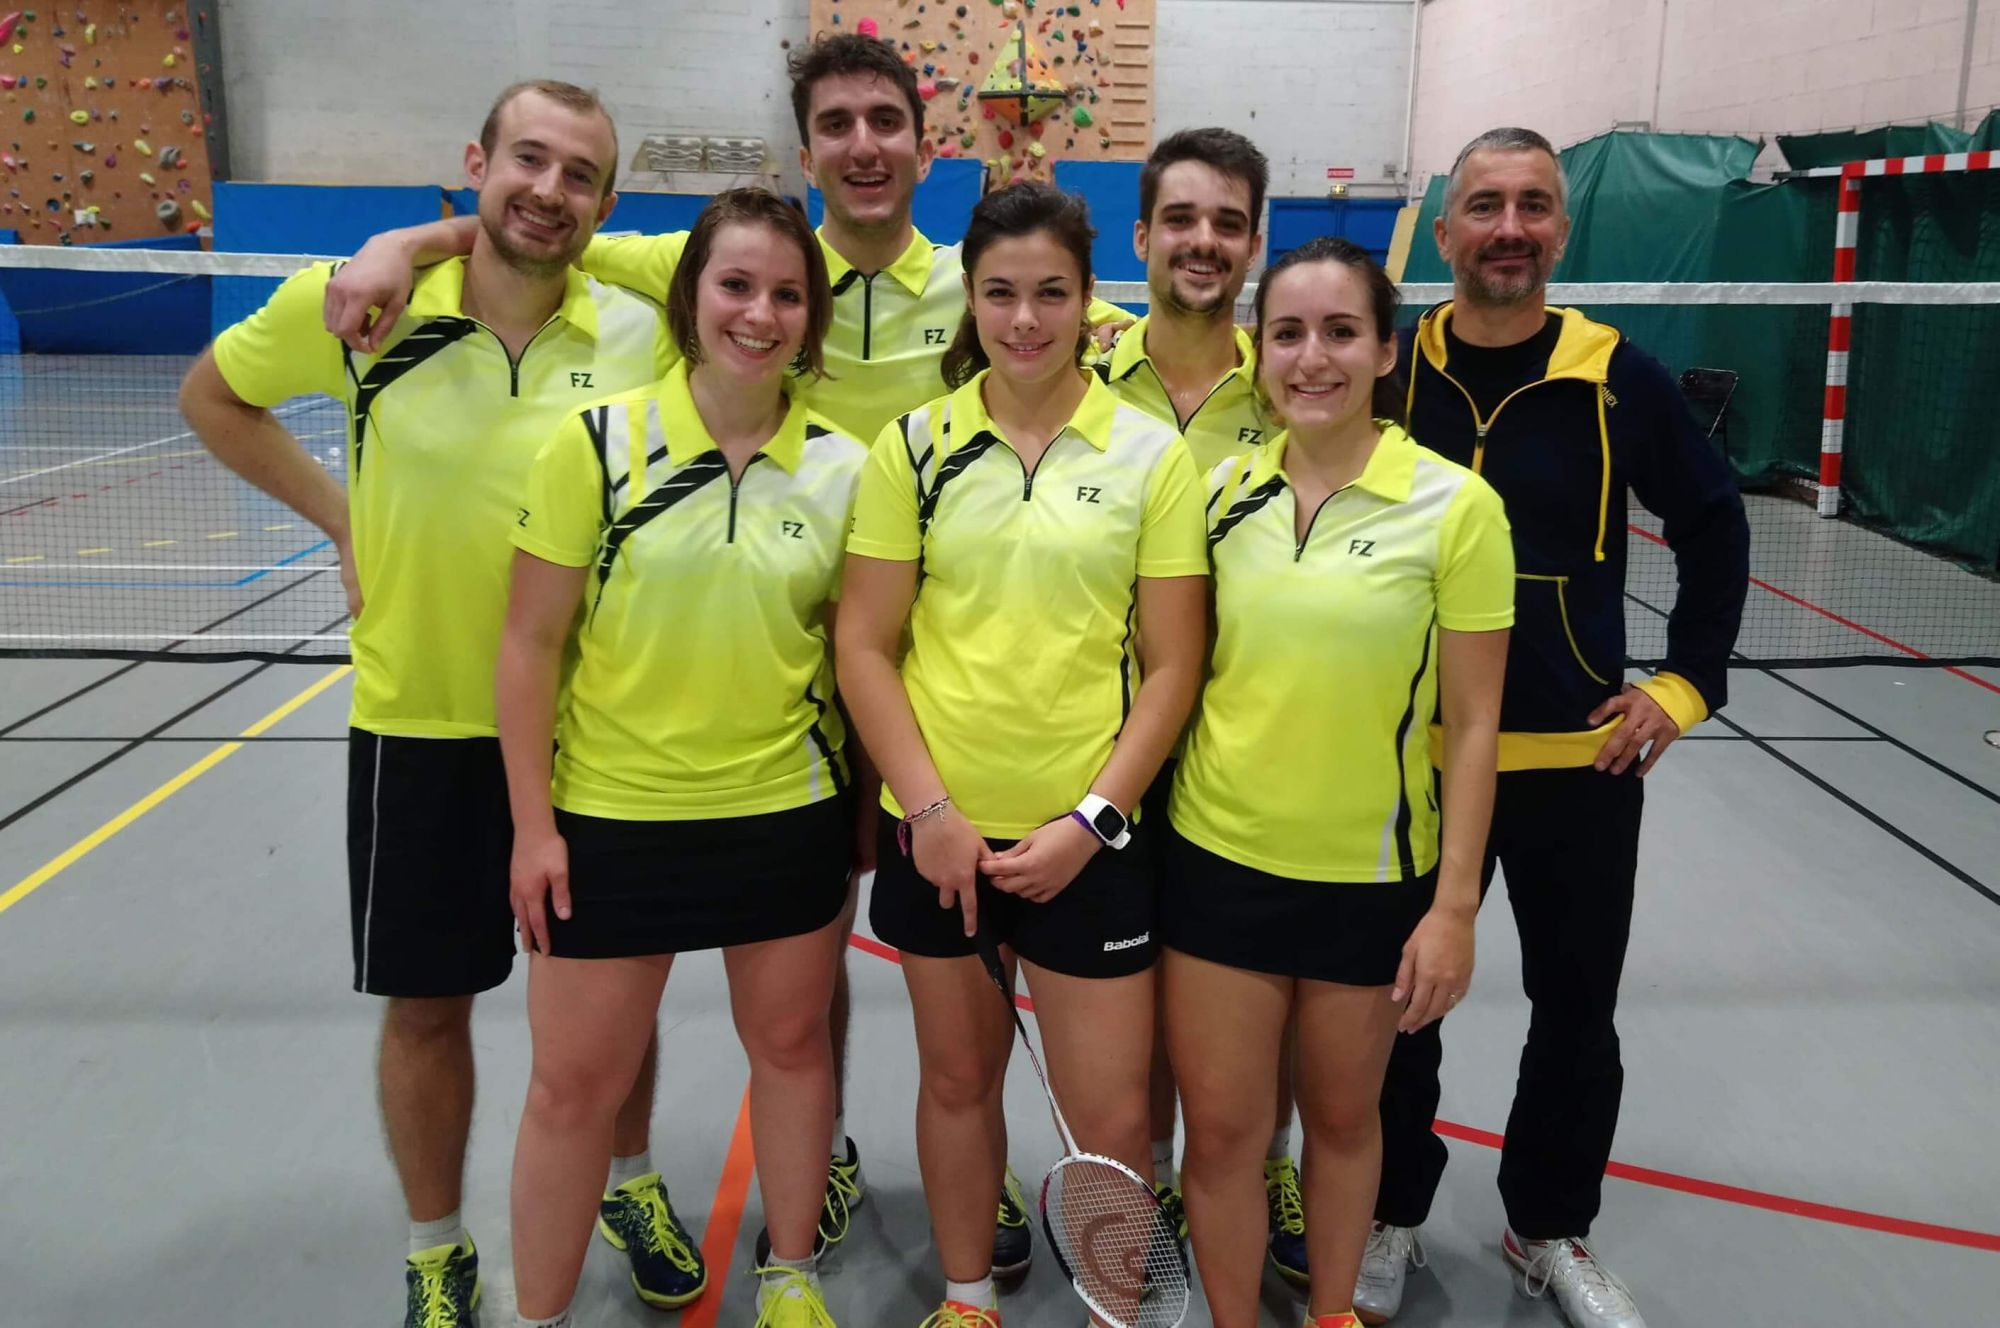 interclub badminton vb1